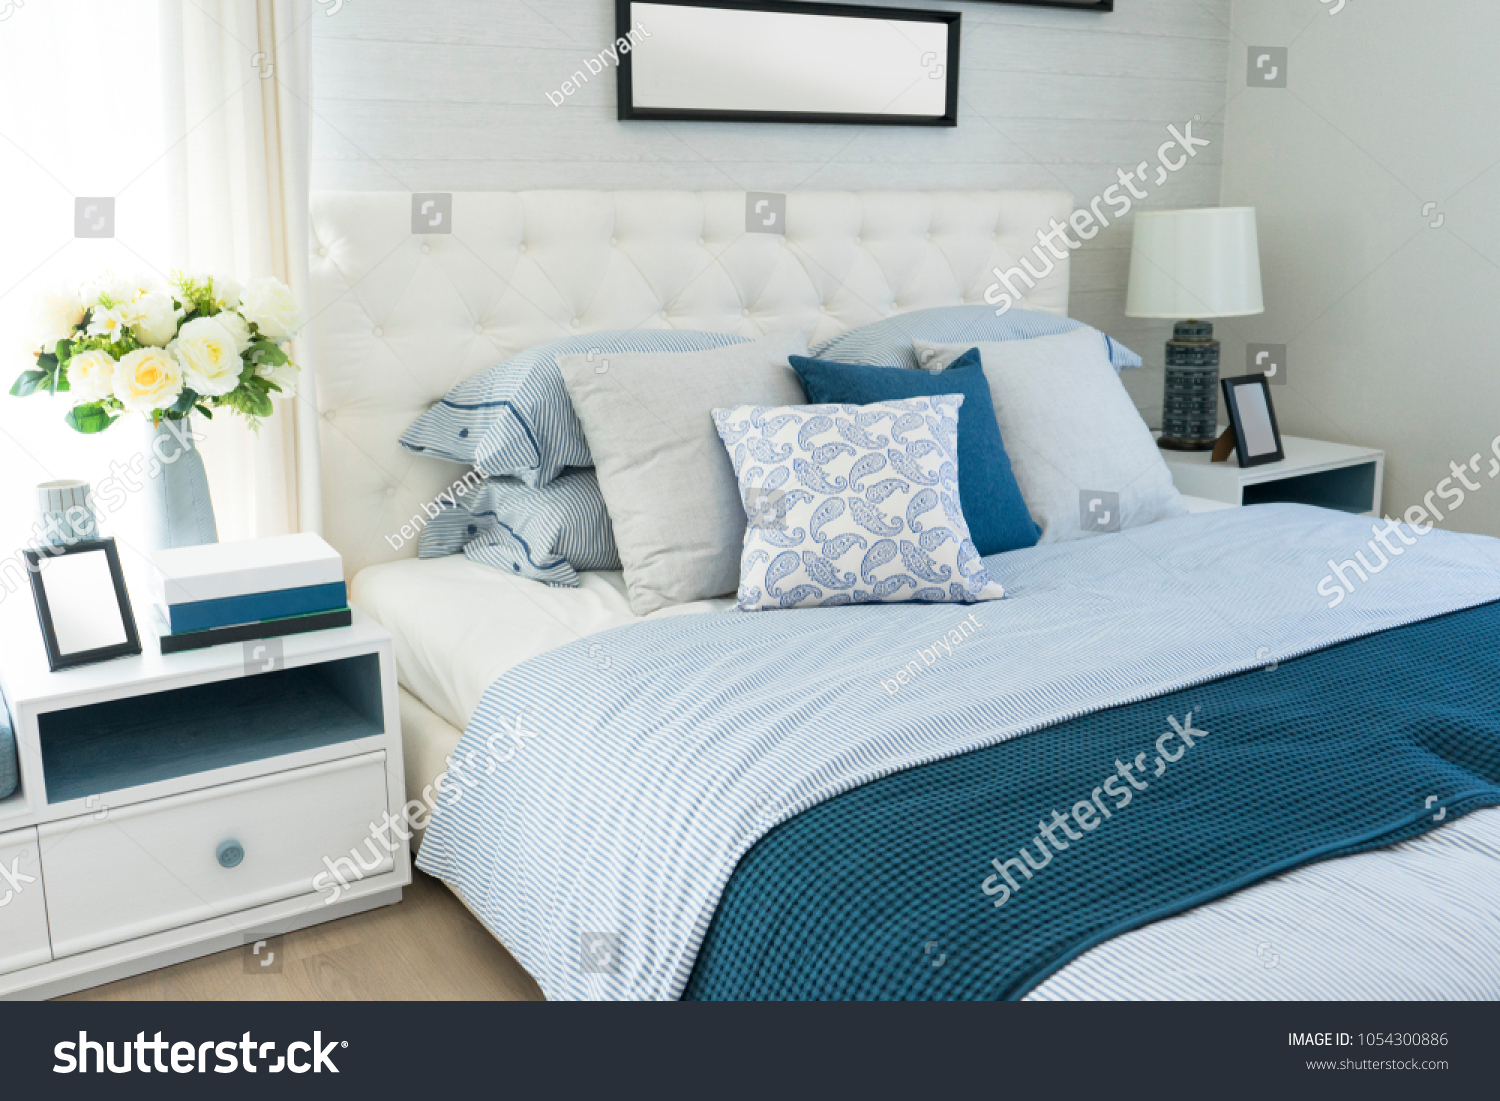 Blue bedroom interior with navy blue pillows against white wall with gallery of posters